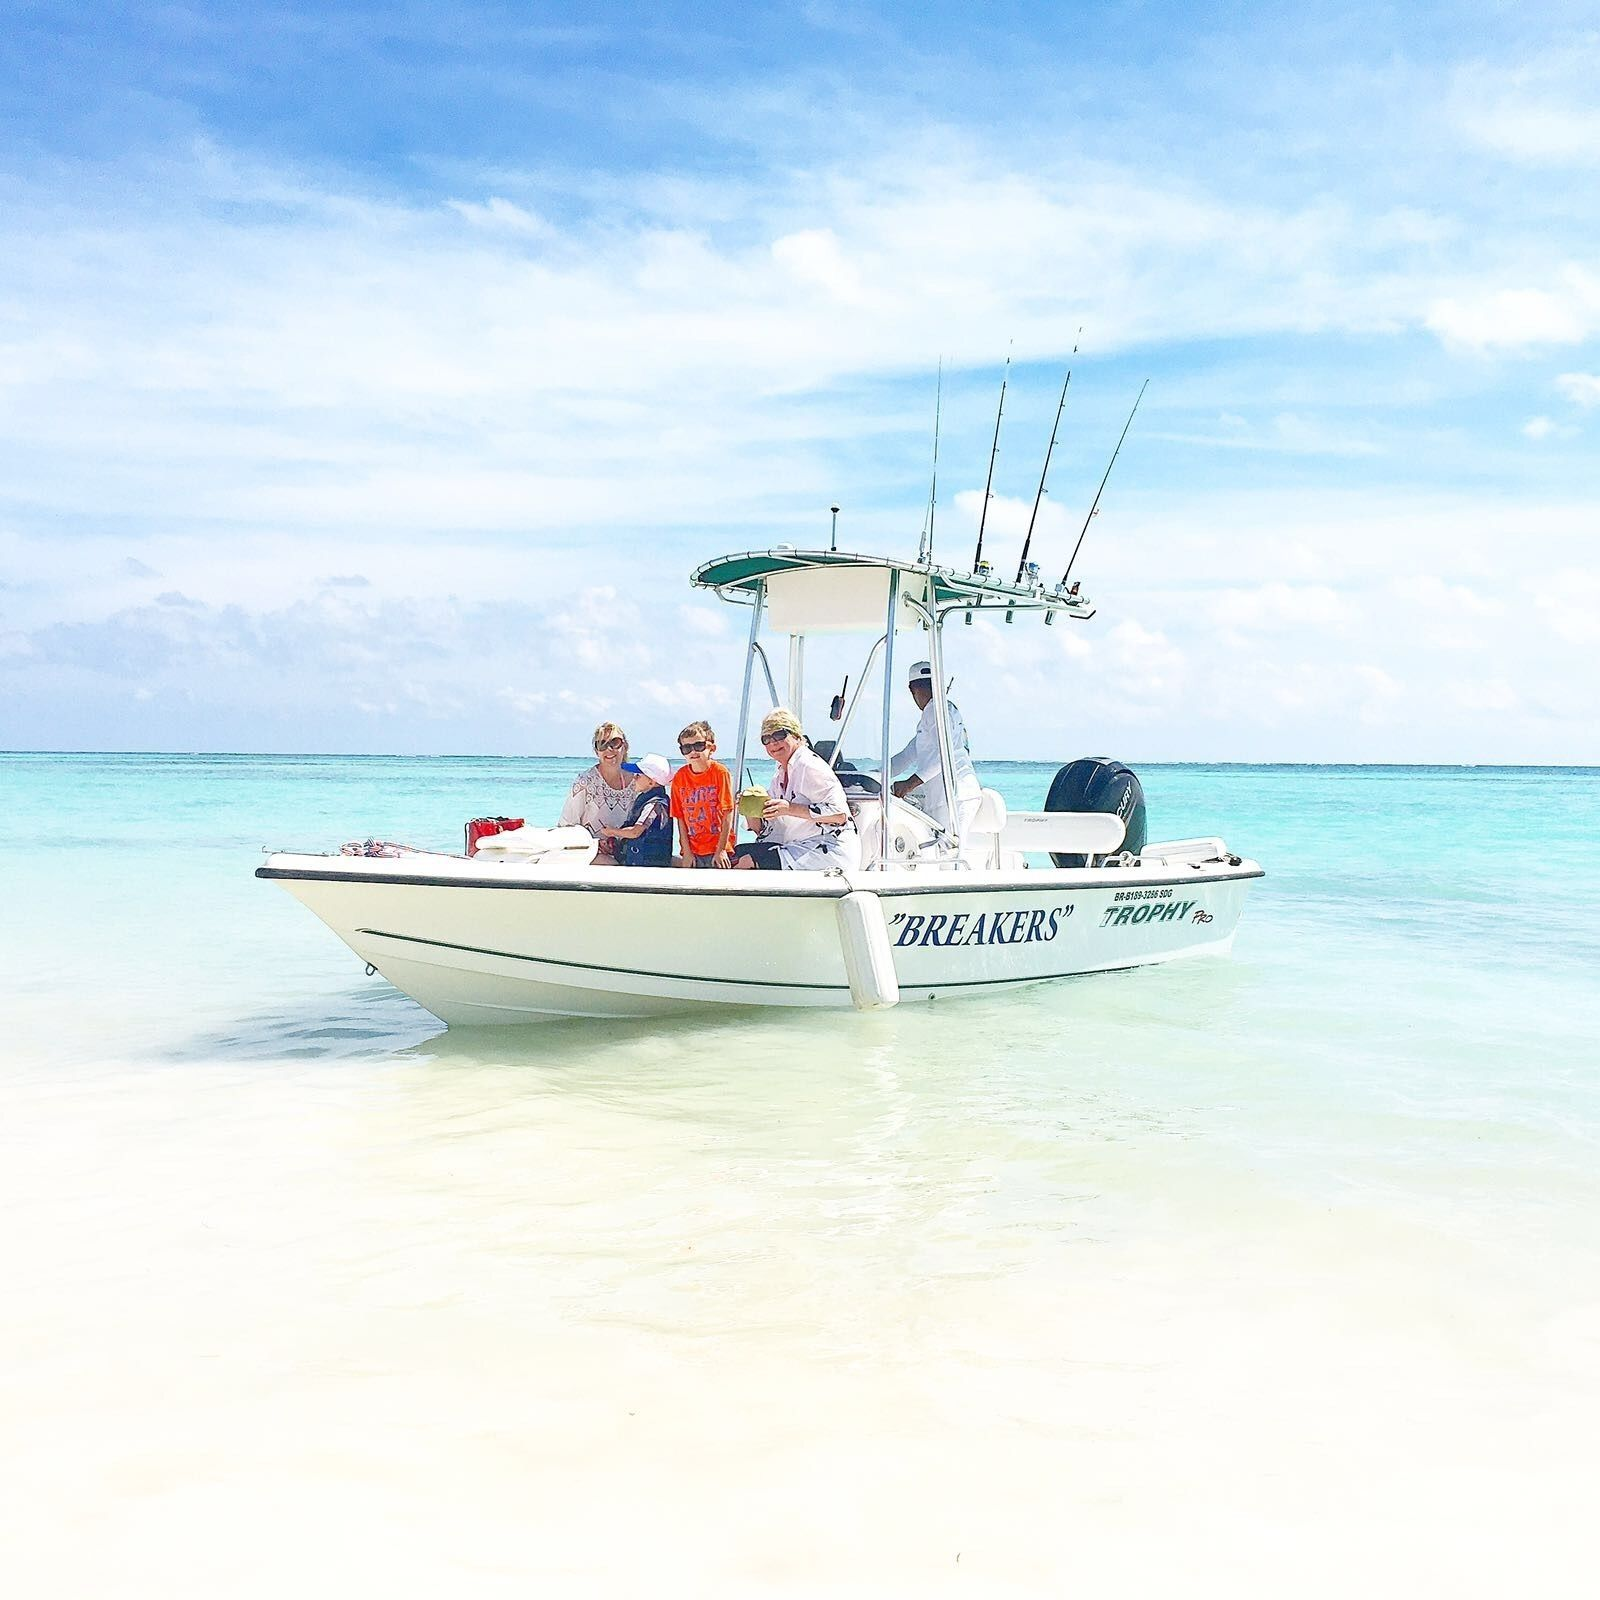 Group boat trip in Punta Cana